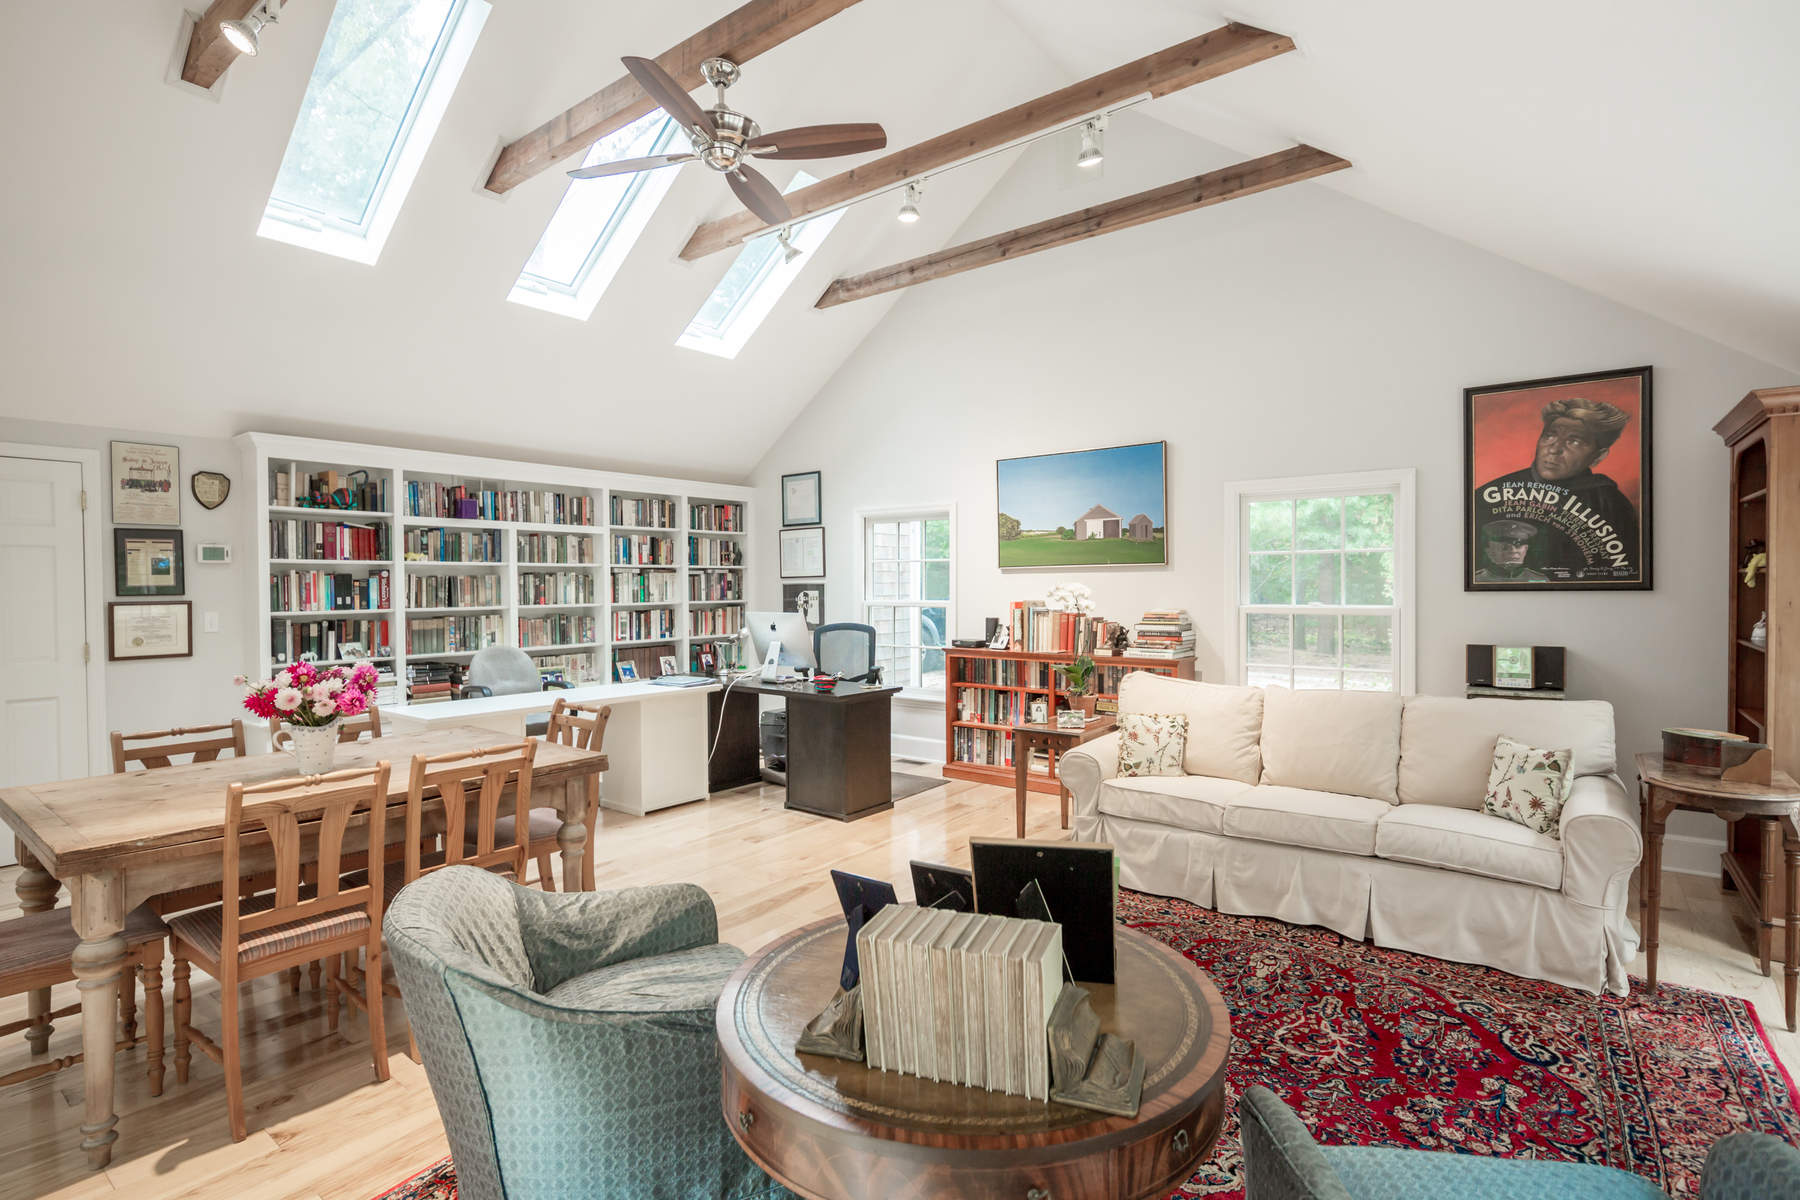 Single Family Home for Rent at New Bright & Airy Sagaponack Rental 429 Sagg Road Sagaponack, New York 11962 United States